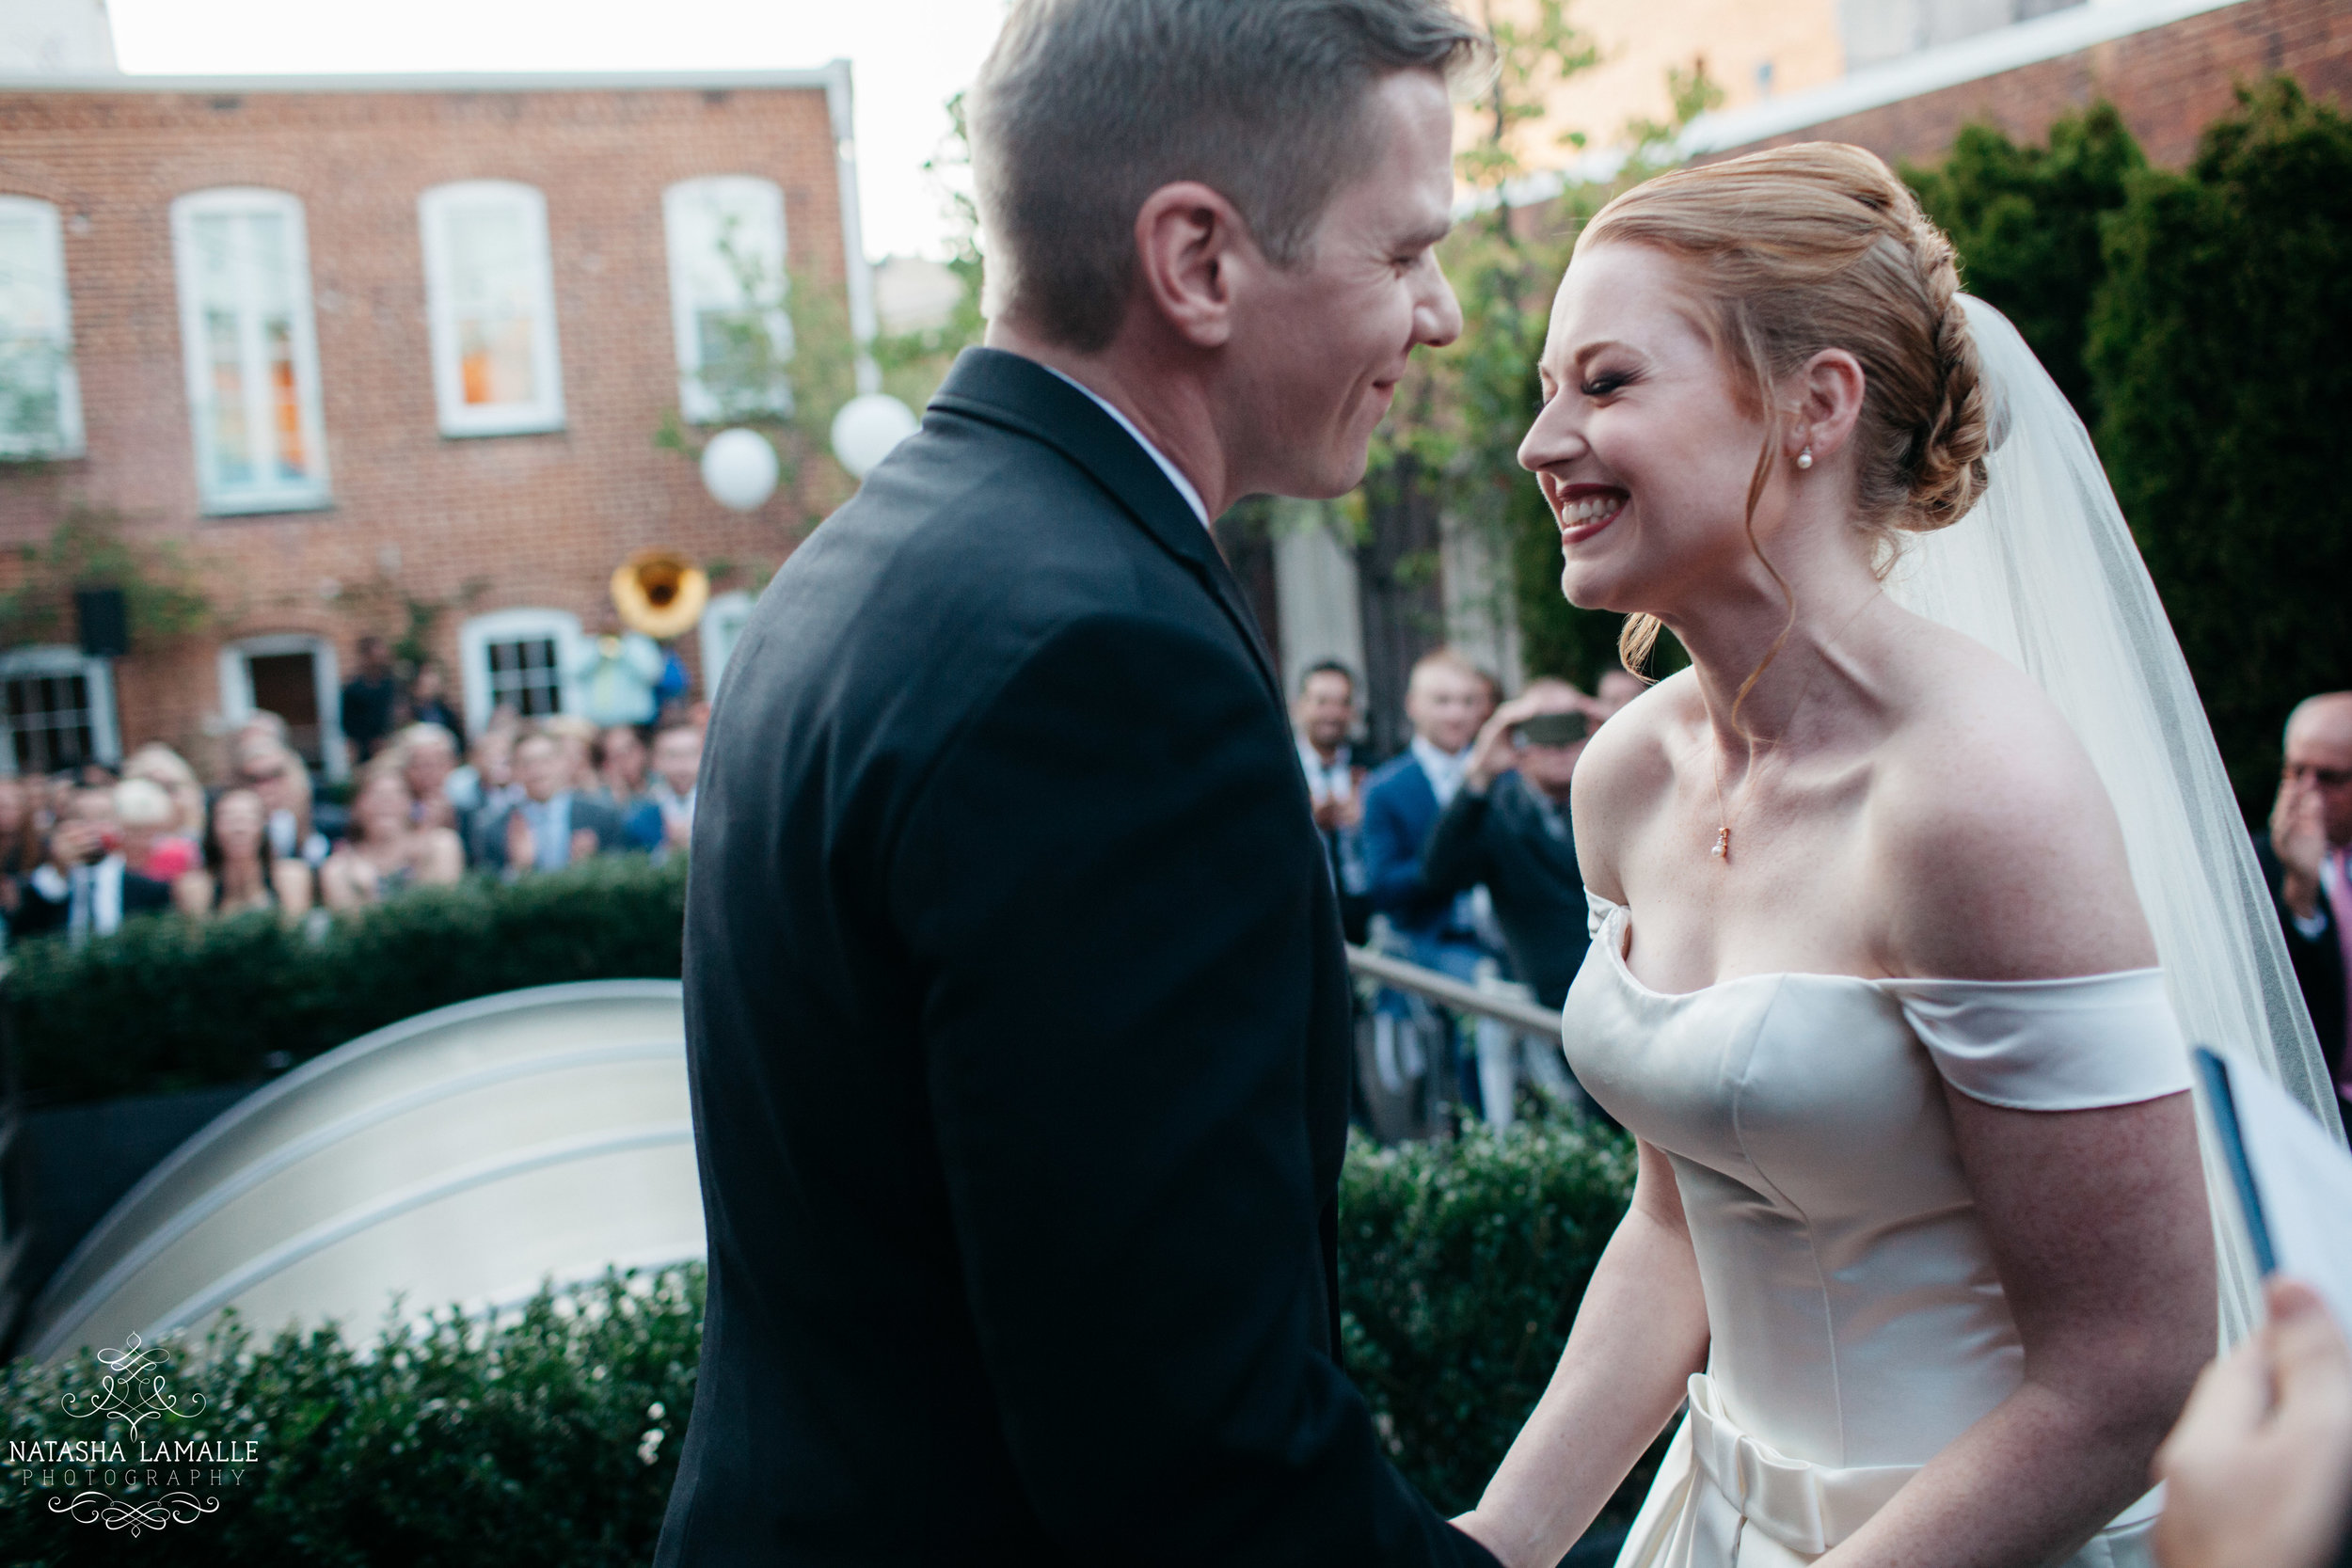 Monika and Gary got married at Fathom Gallery in Washington DC.